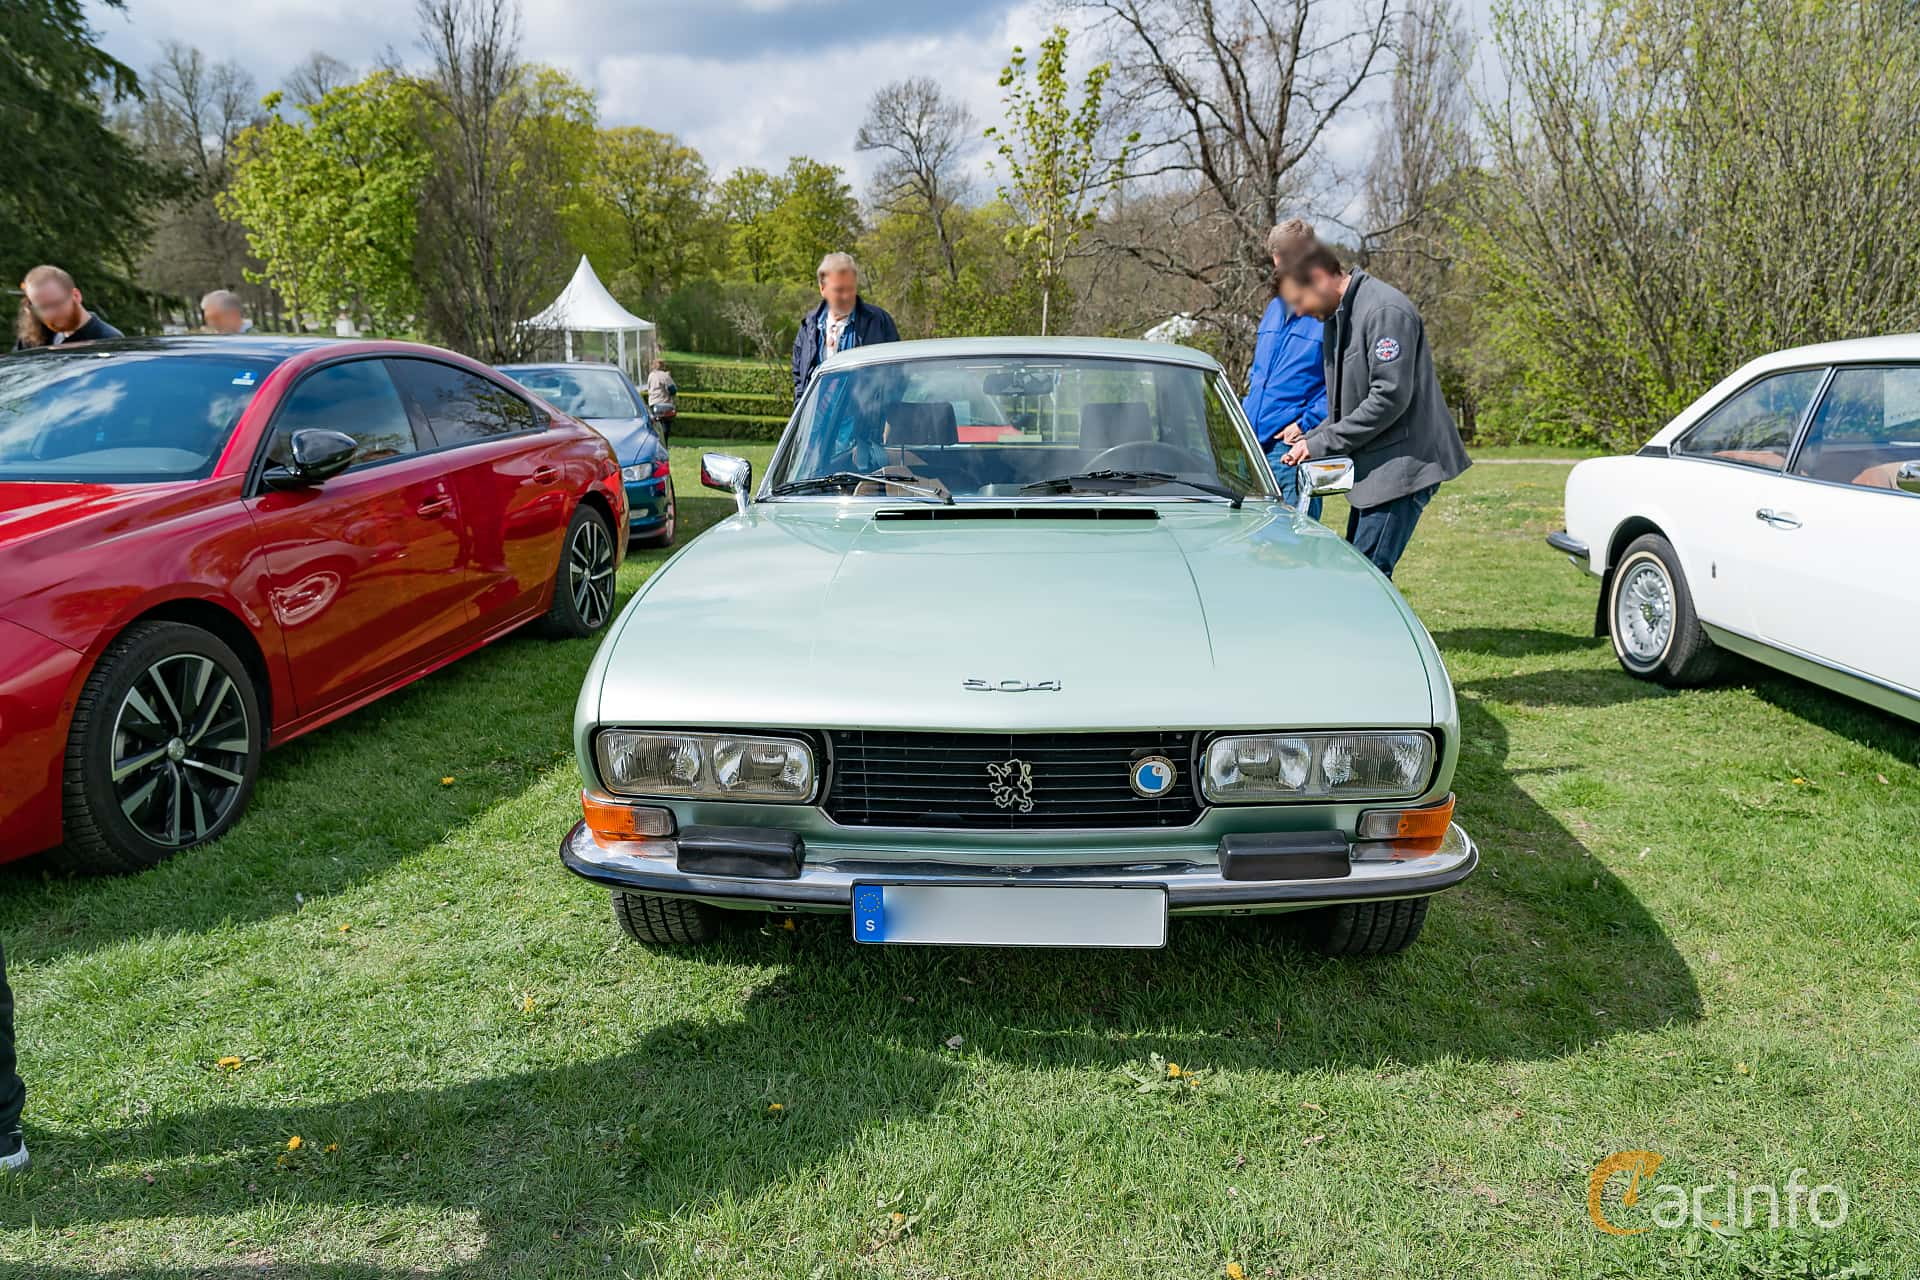 Peugeot 504 Coupé 2.7 V6 Manual, 144hp, 1978 at Fest För Franska Fordon  på Taxinge slott 2019